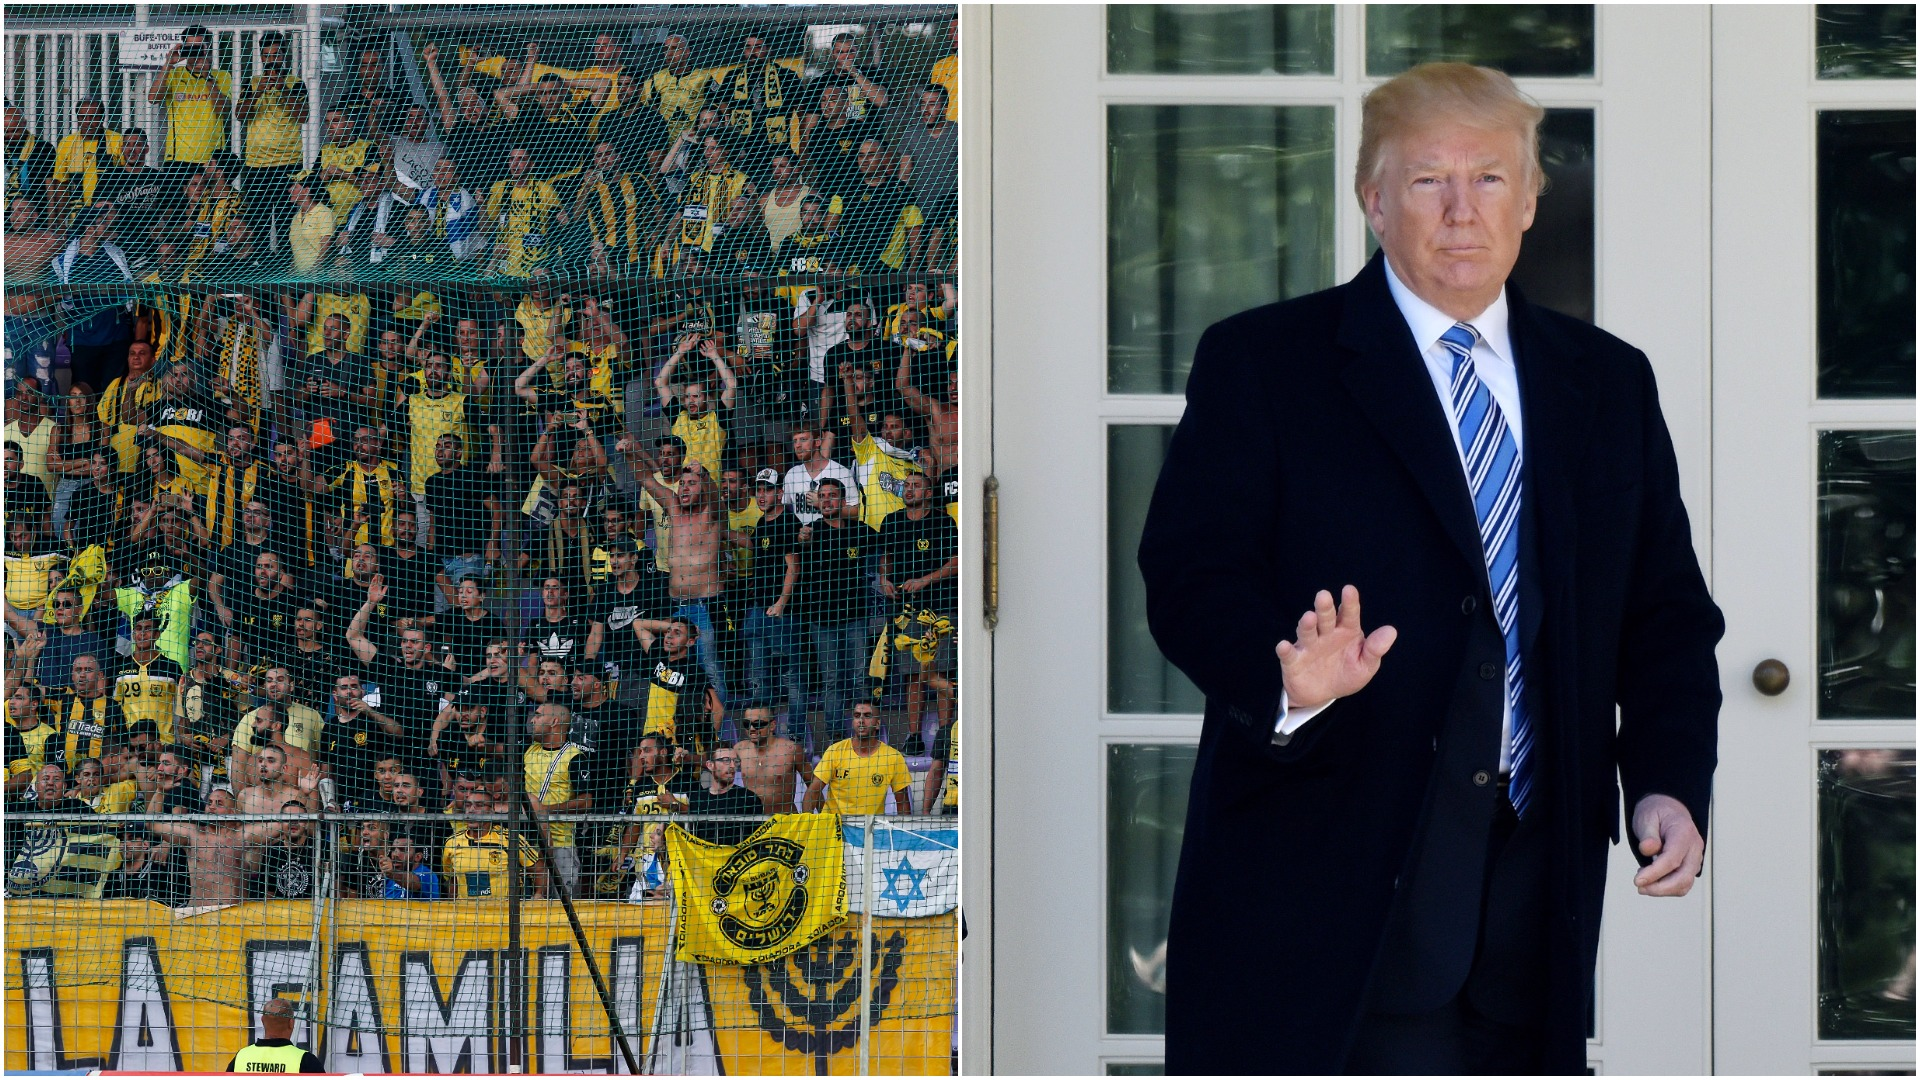 Jerusalem soccer team to add 'Trump' to name as tribute